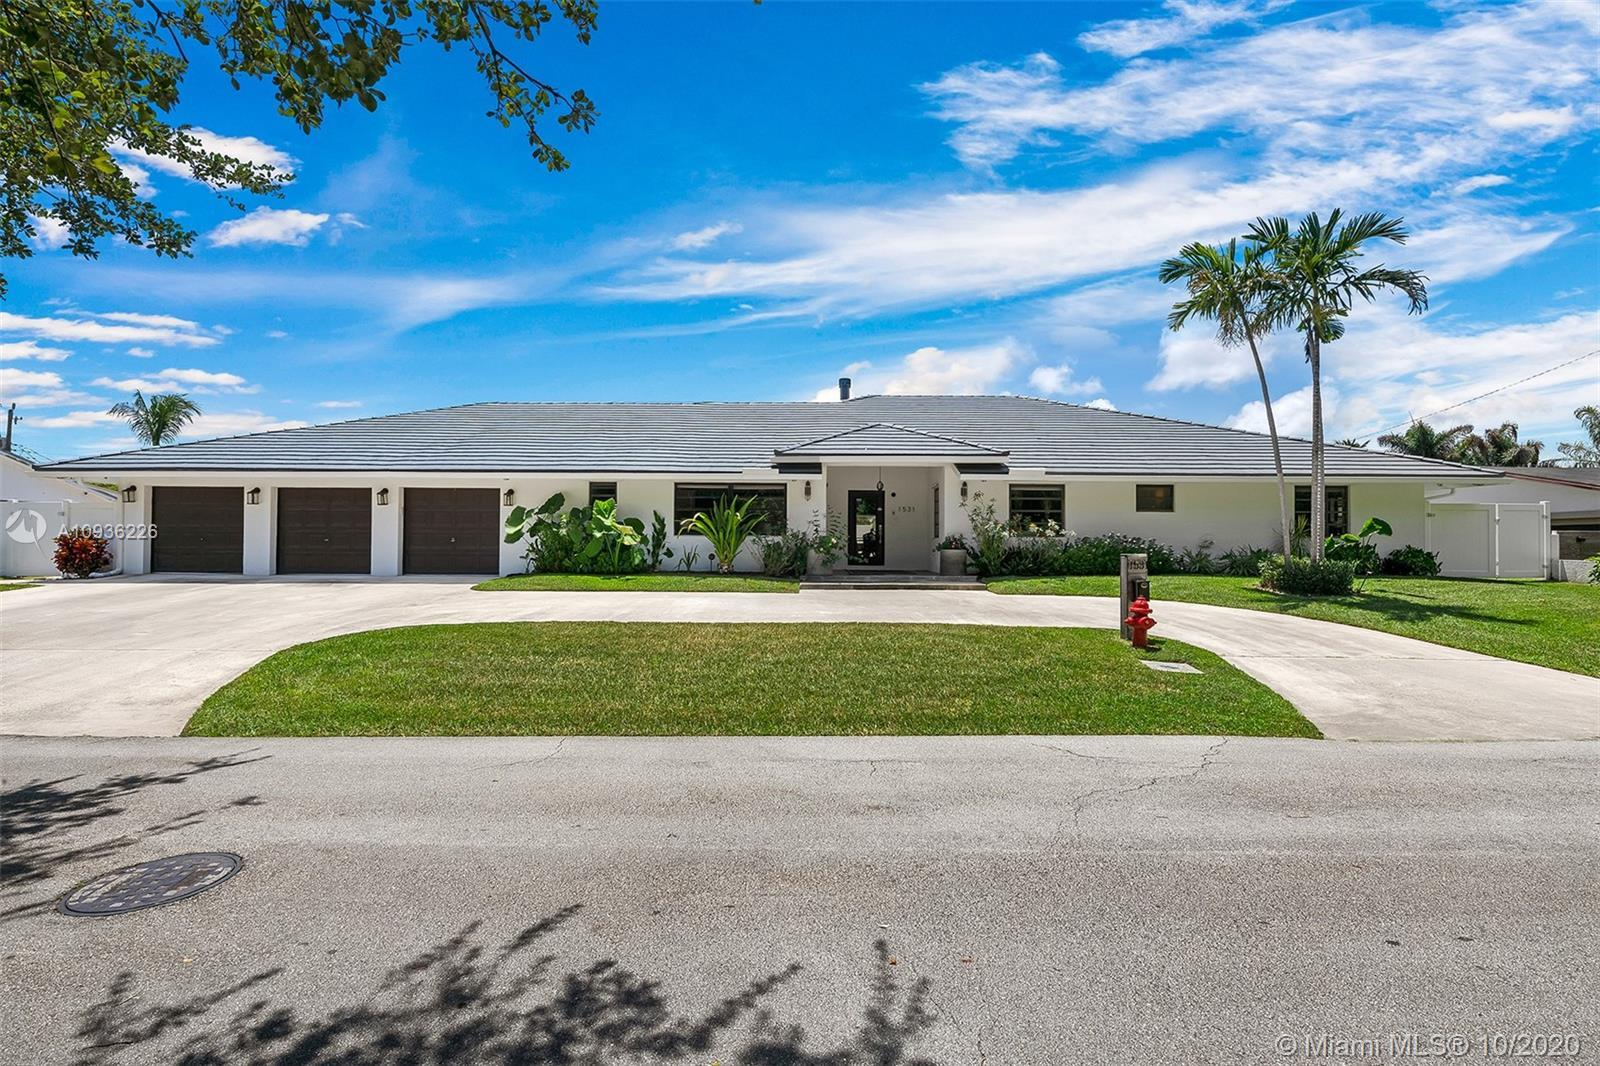 A place to call home. Originally a builder's home! This 6 bedroom ranch style remodeled home boasts